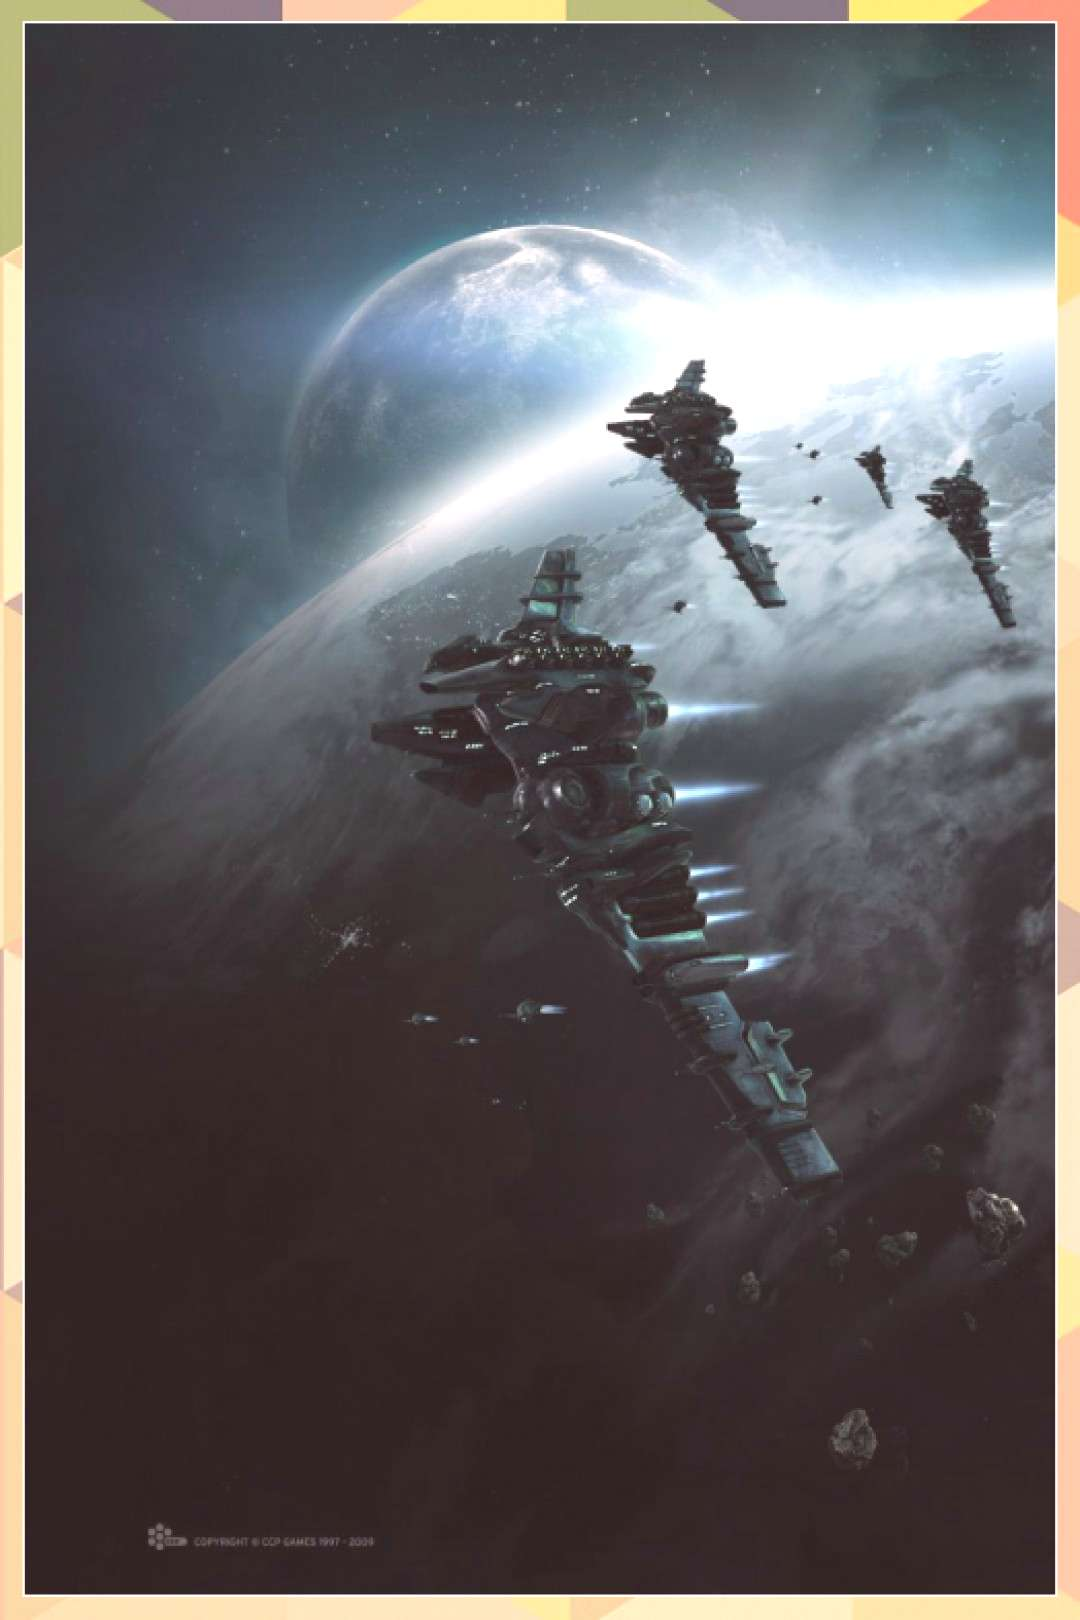 Eve Online Myrmidon-class battlecruisers. I wish they would fit her to be a bett... of animation ar